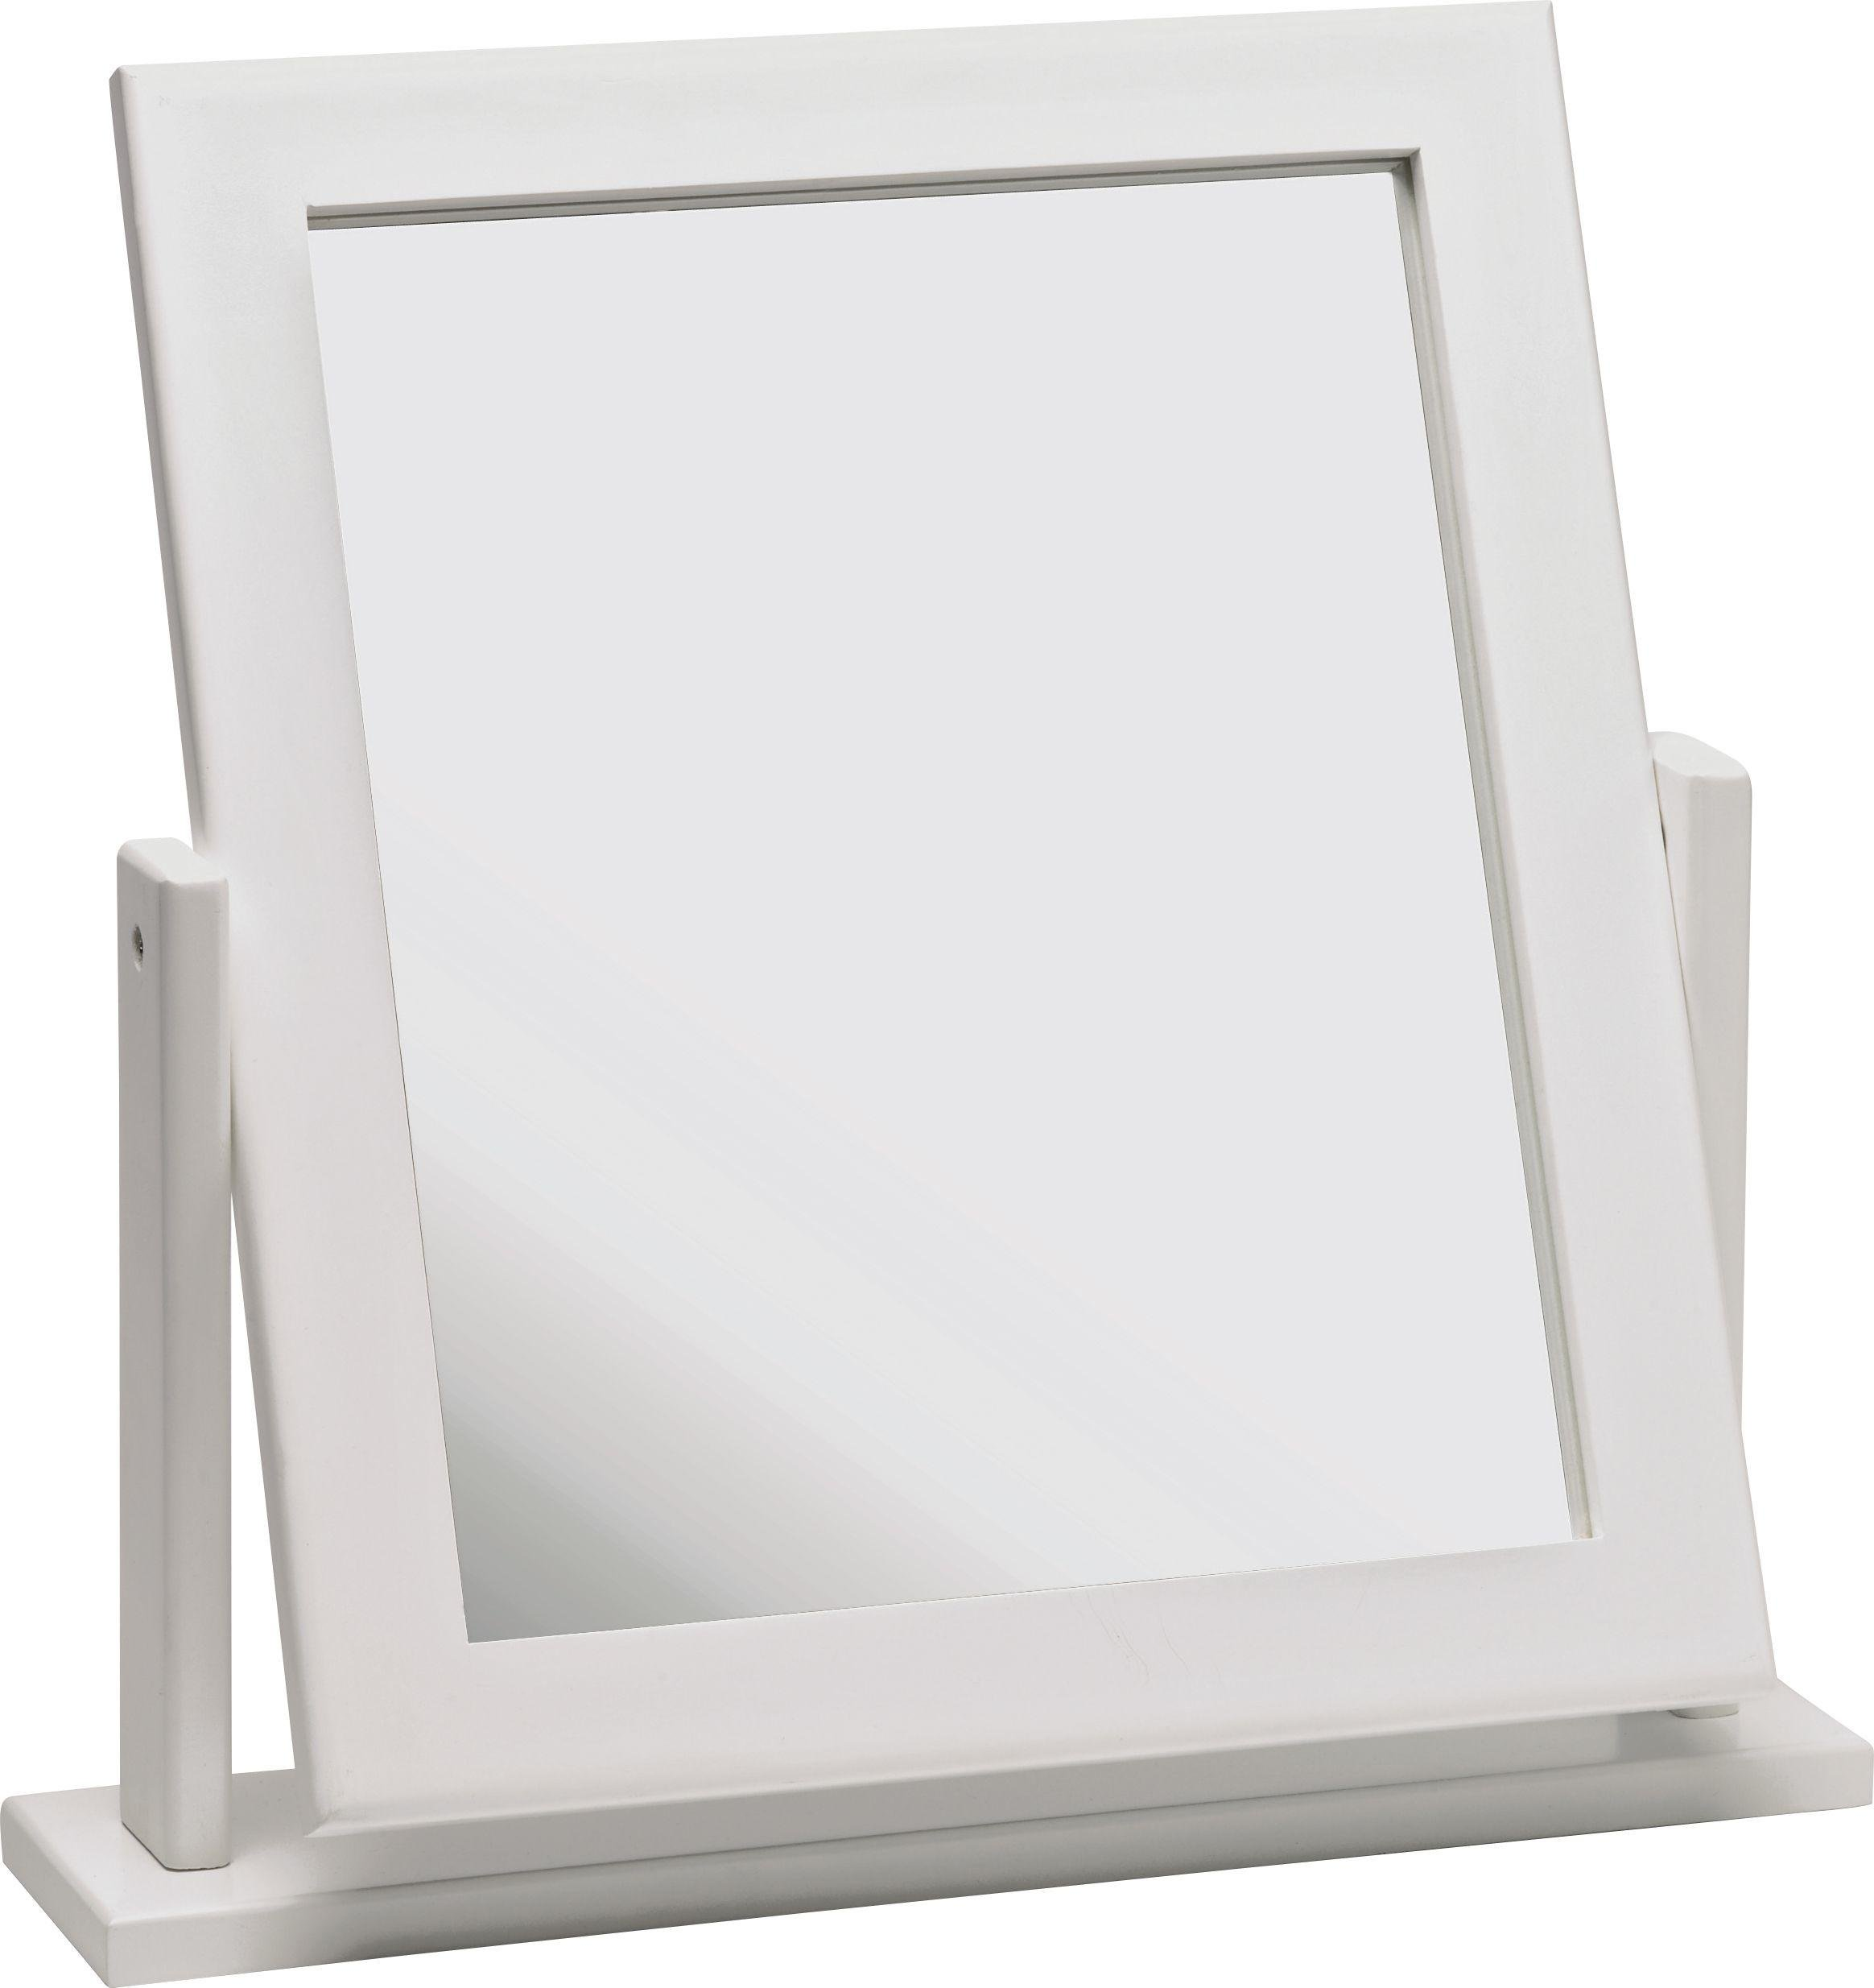 mirror table. home square dressing table mirror - white o